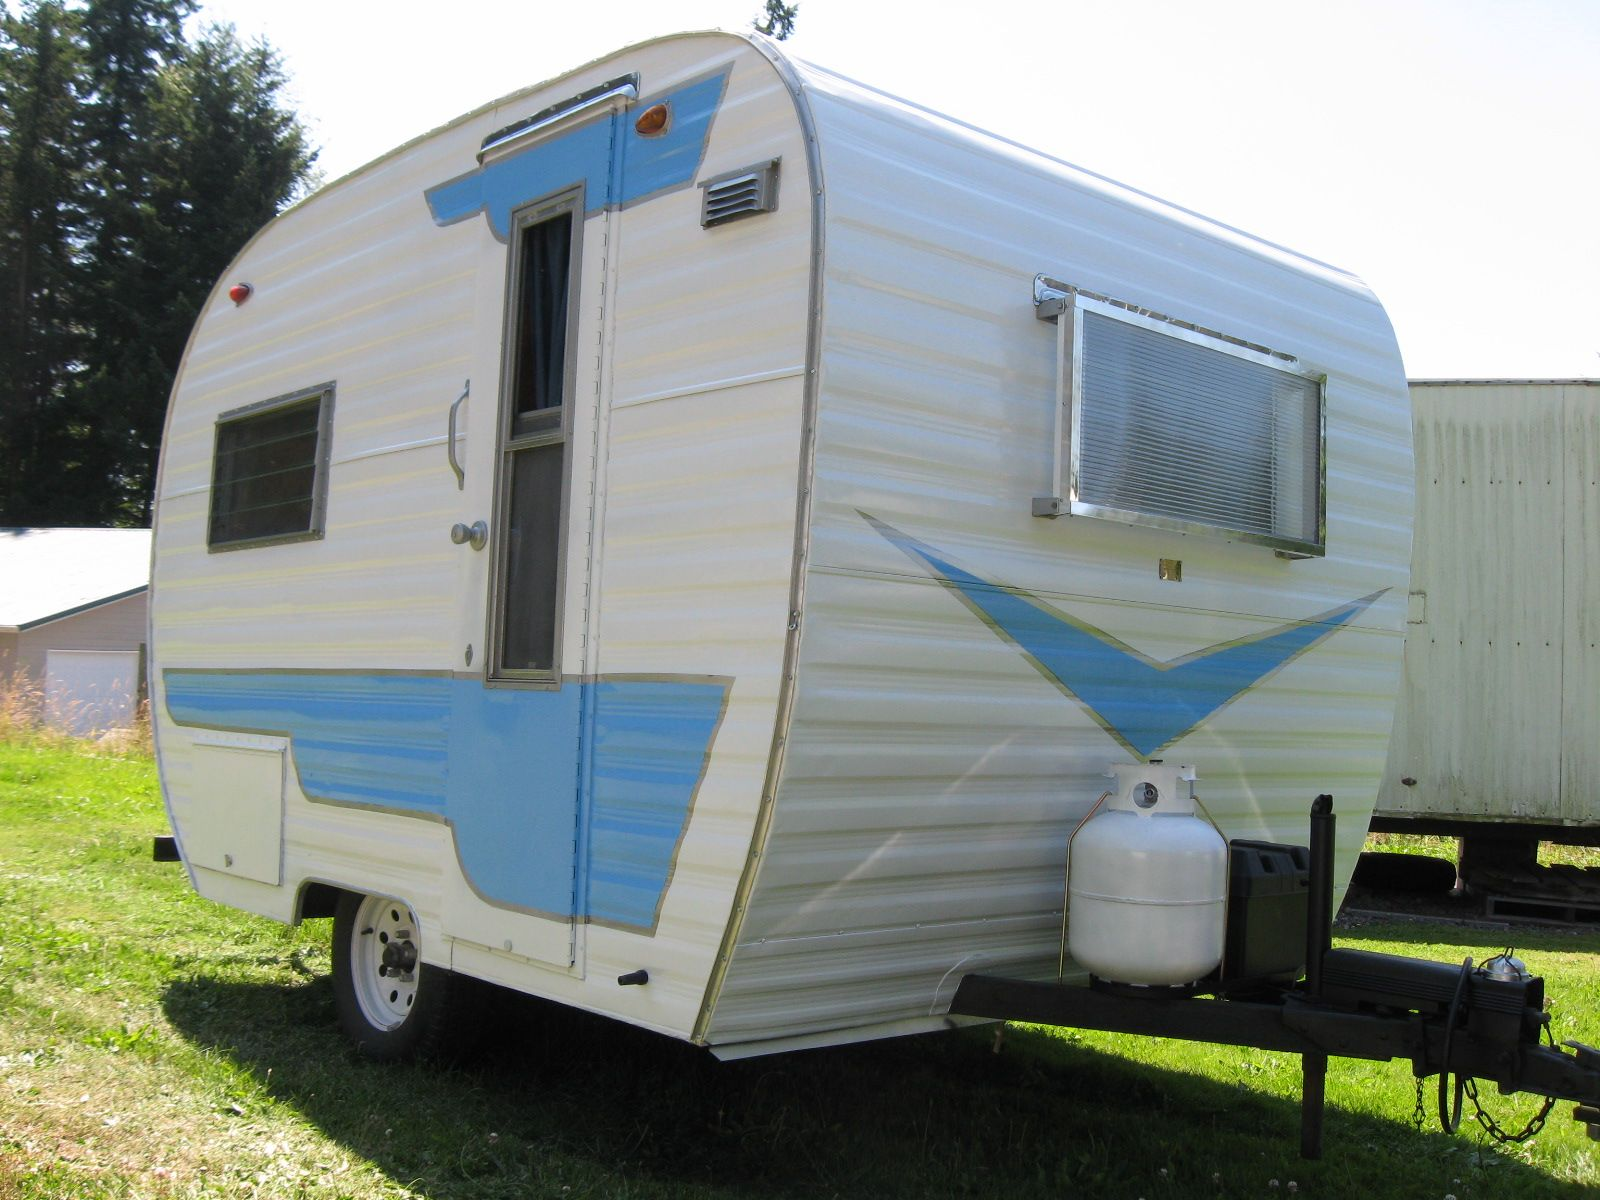 Restored 64 Cardinal Vintage Camper For Sale | Vintage Campers